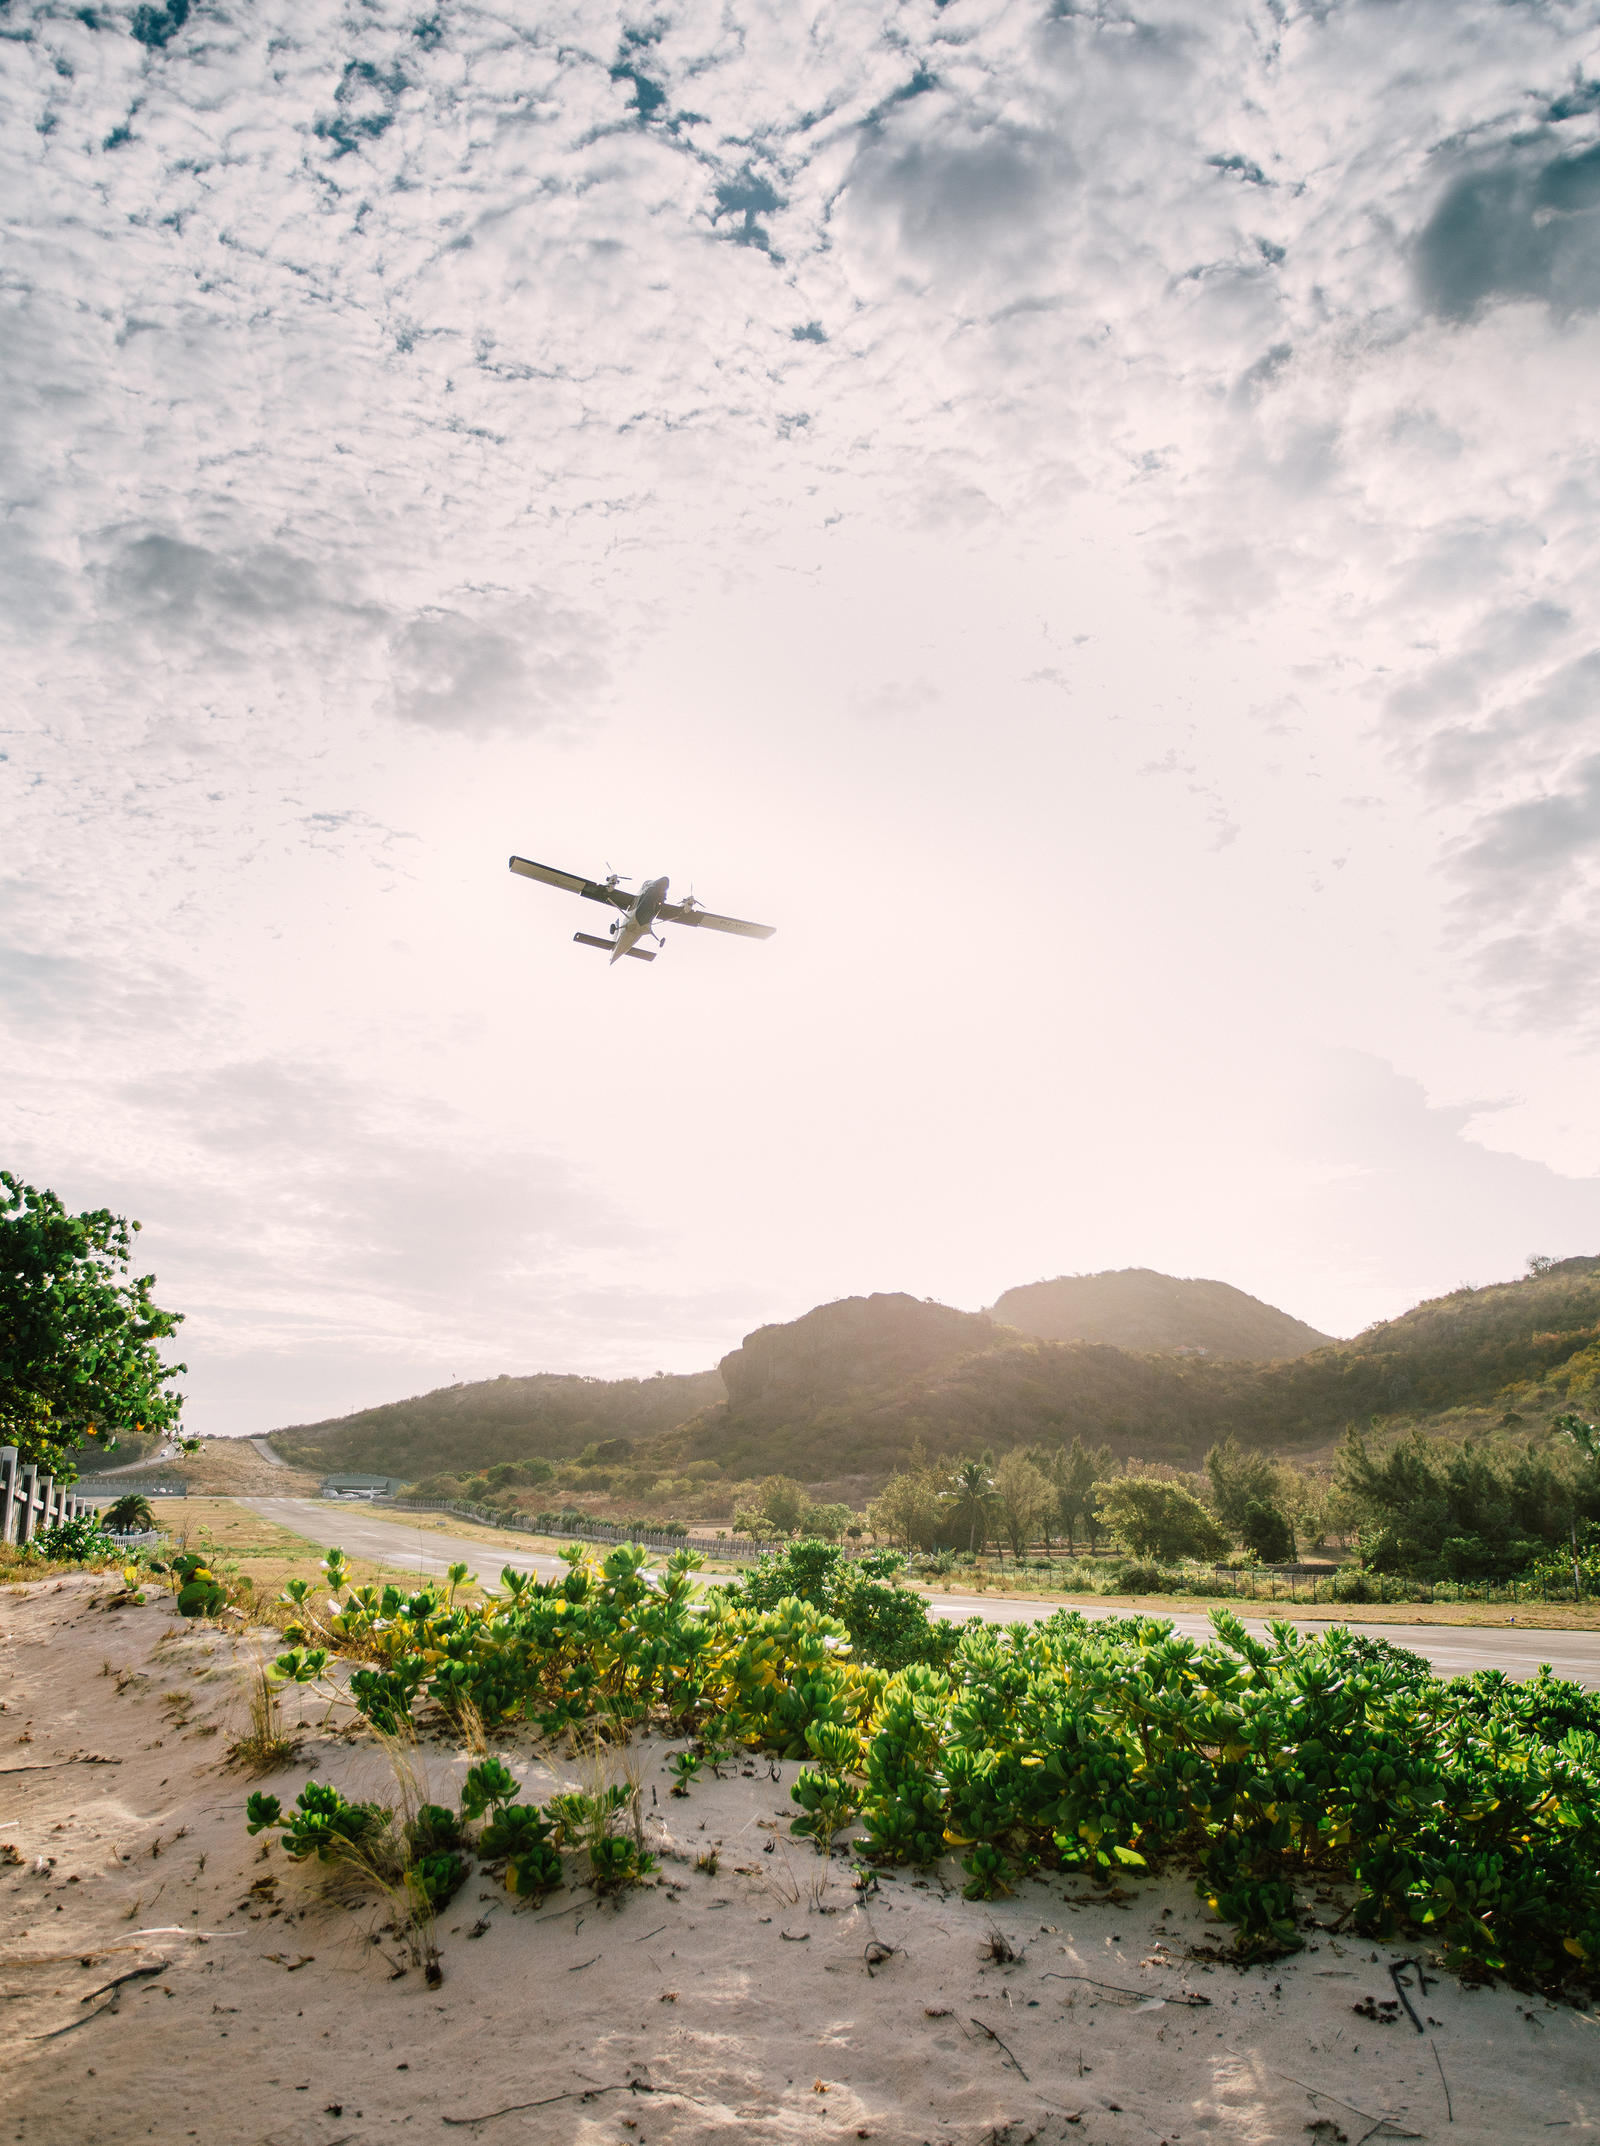 Lifestyle Photography | Atlanta, GA | A small plane takes off from a runway near the beach.